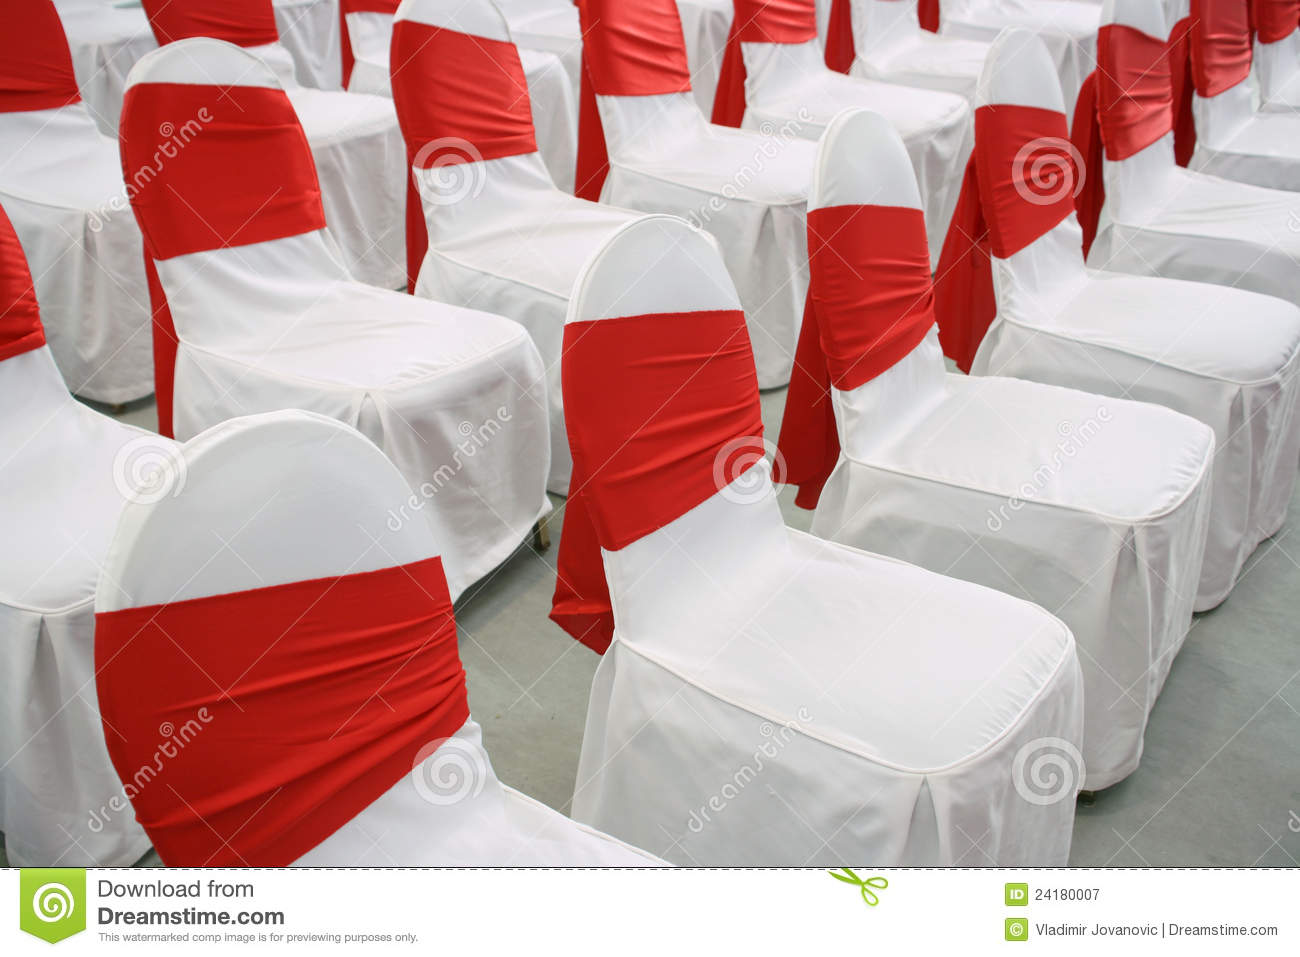 Rooms: Event Chairs Royalty Free Stock Photography